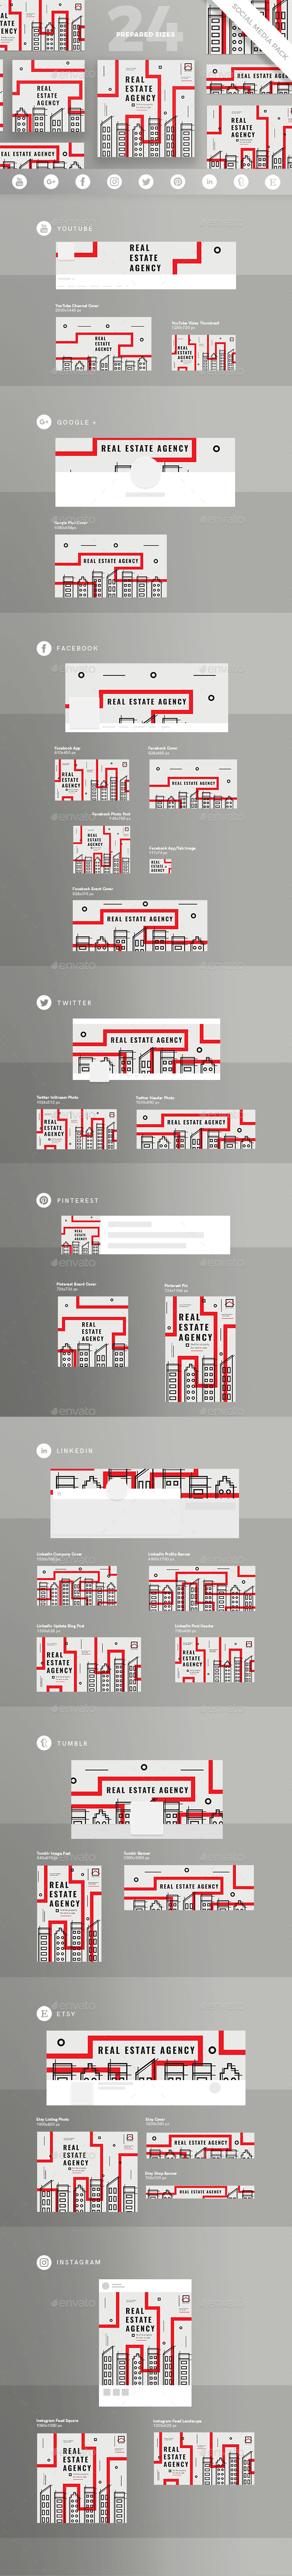 Real Estate Agency Social Media Pack - Miscellaneous Social Media